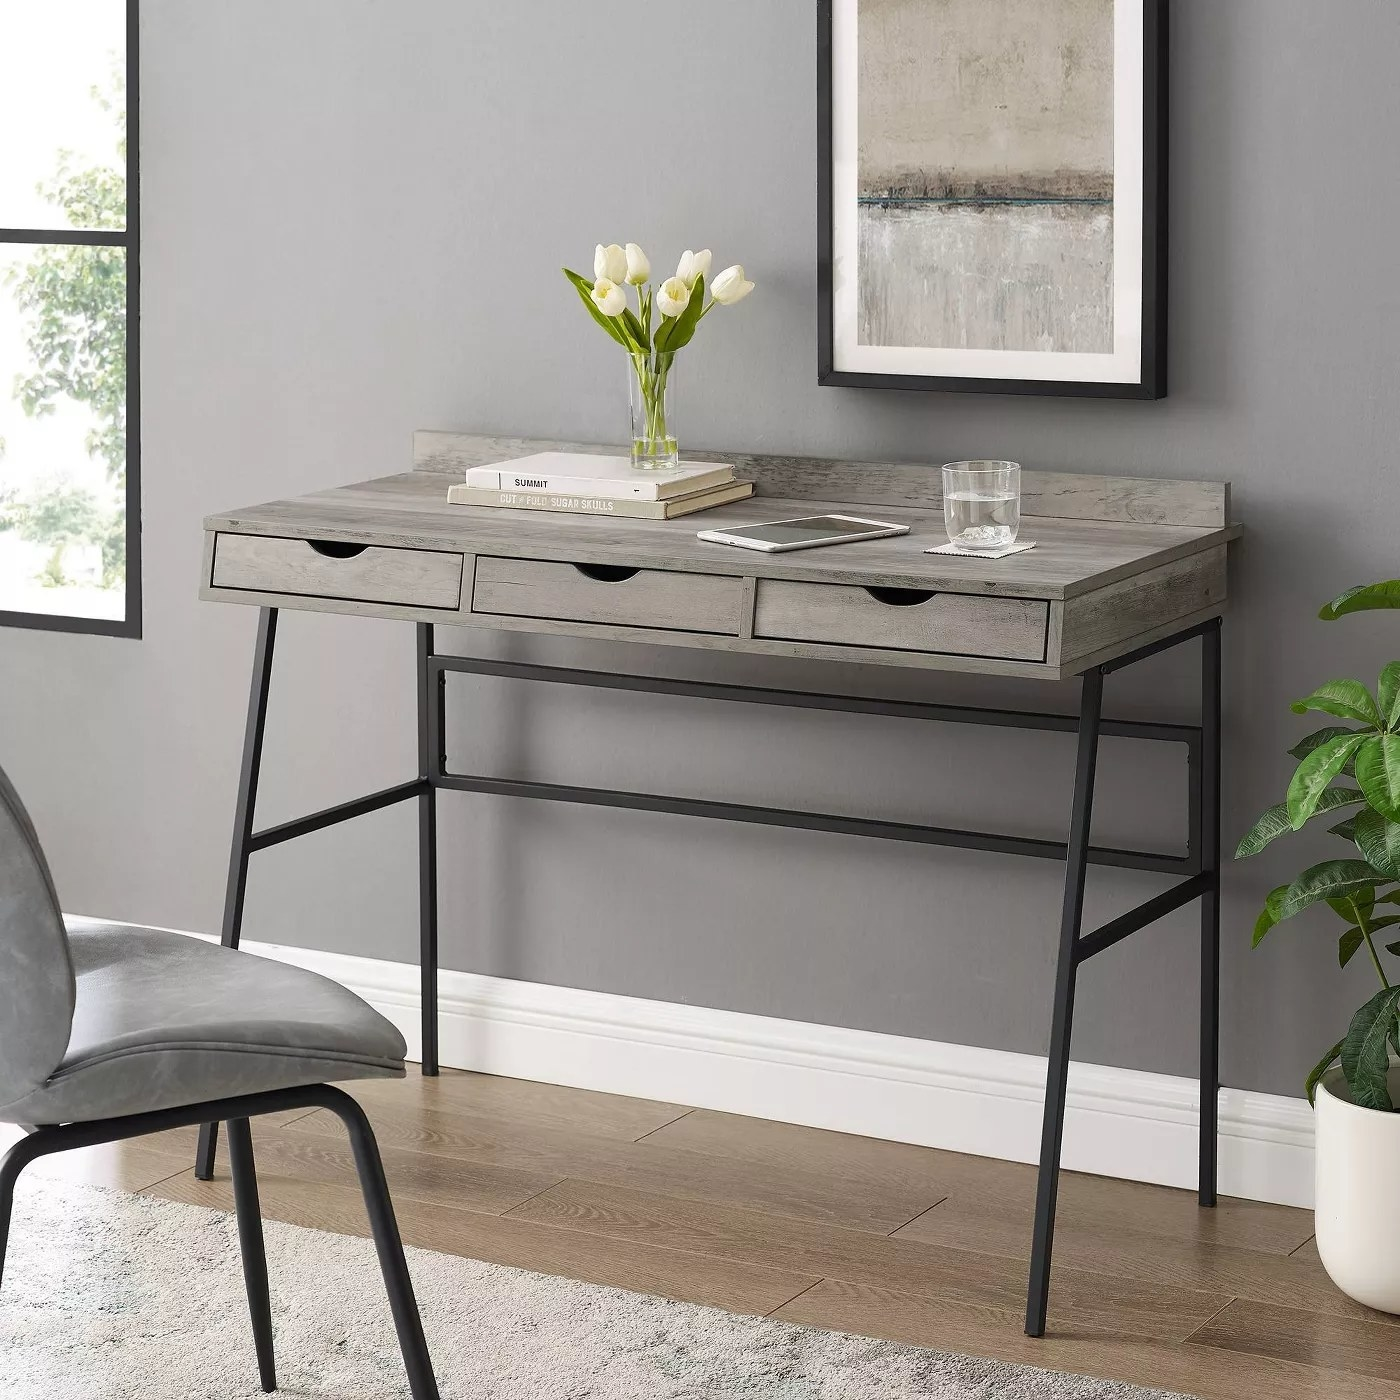 A gray writing desk with three drawers and a black steel frame